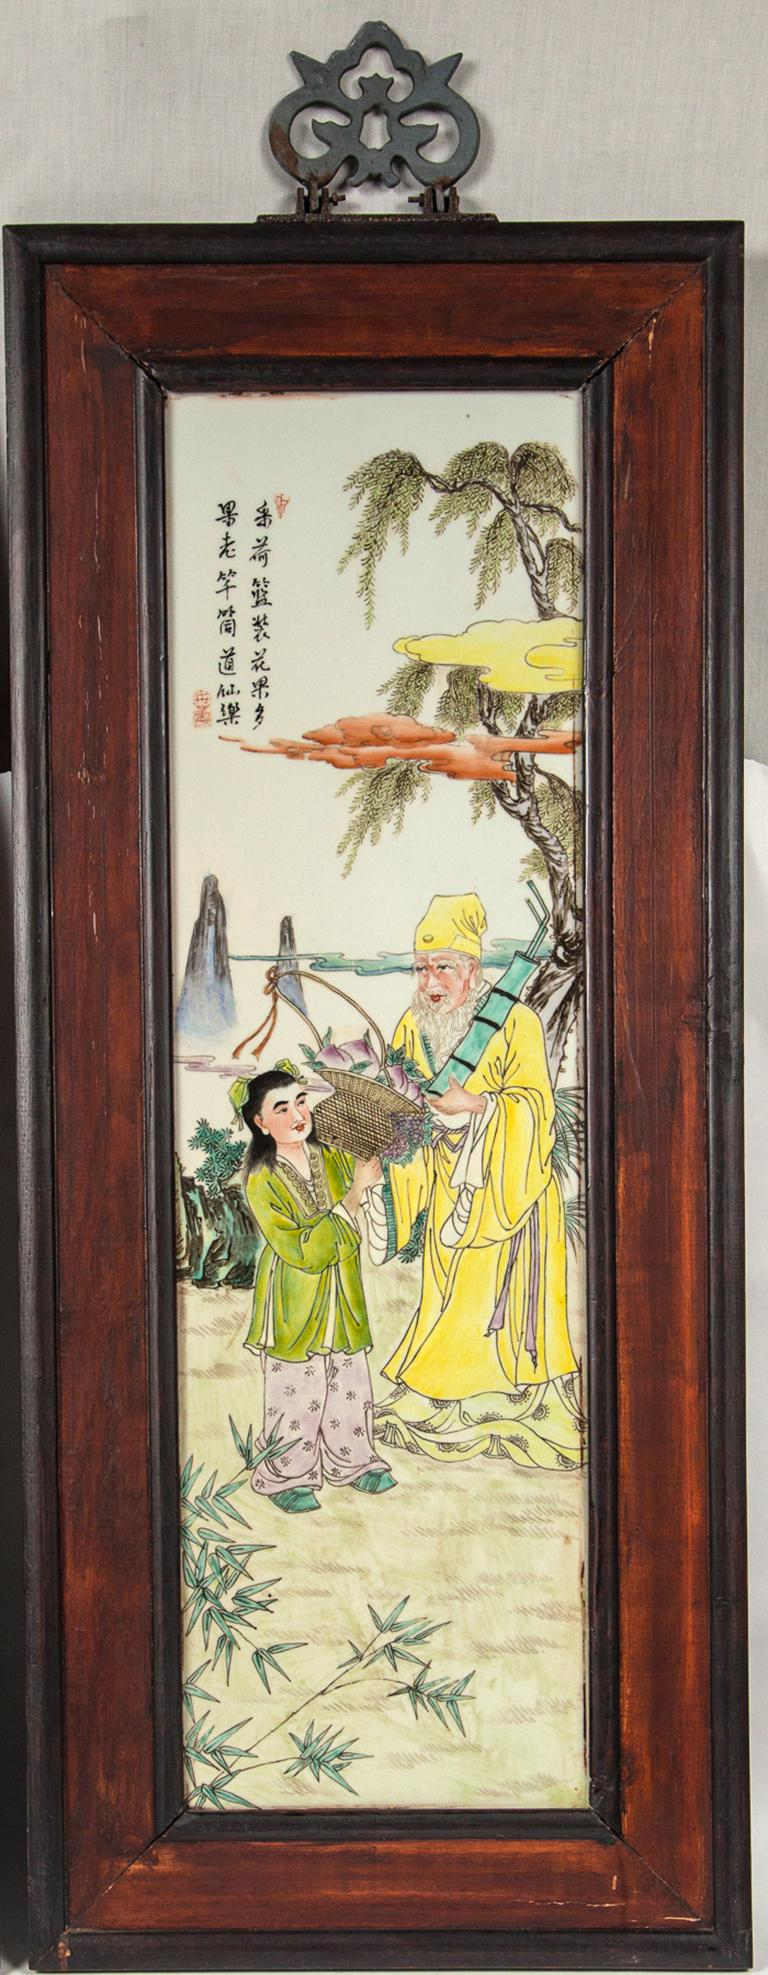 Set of 4 Framed Chinese Porcelain Plaques In Good Condition For Sale In Woodbury, CT